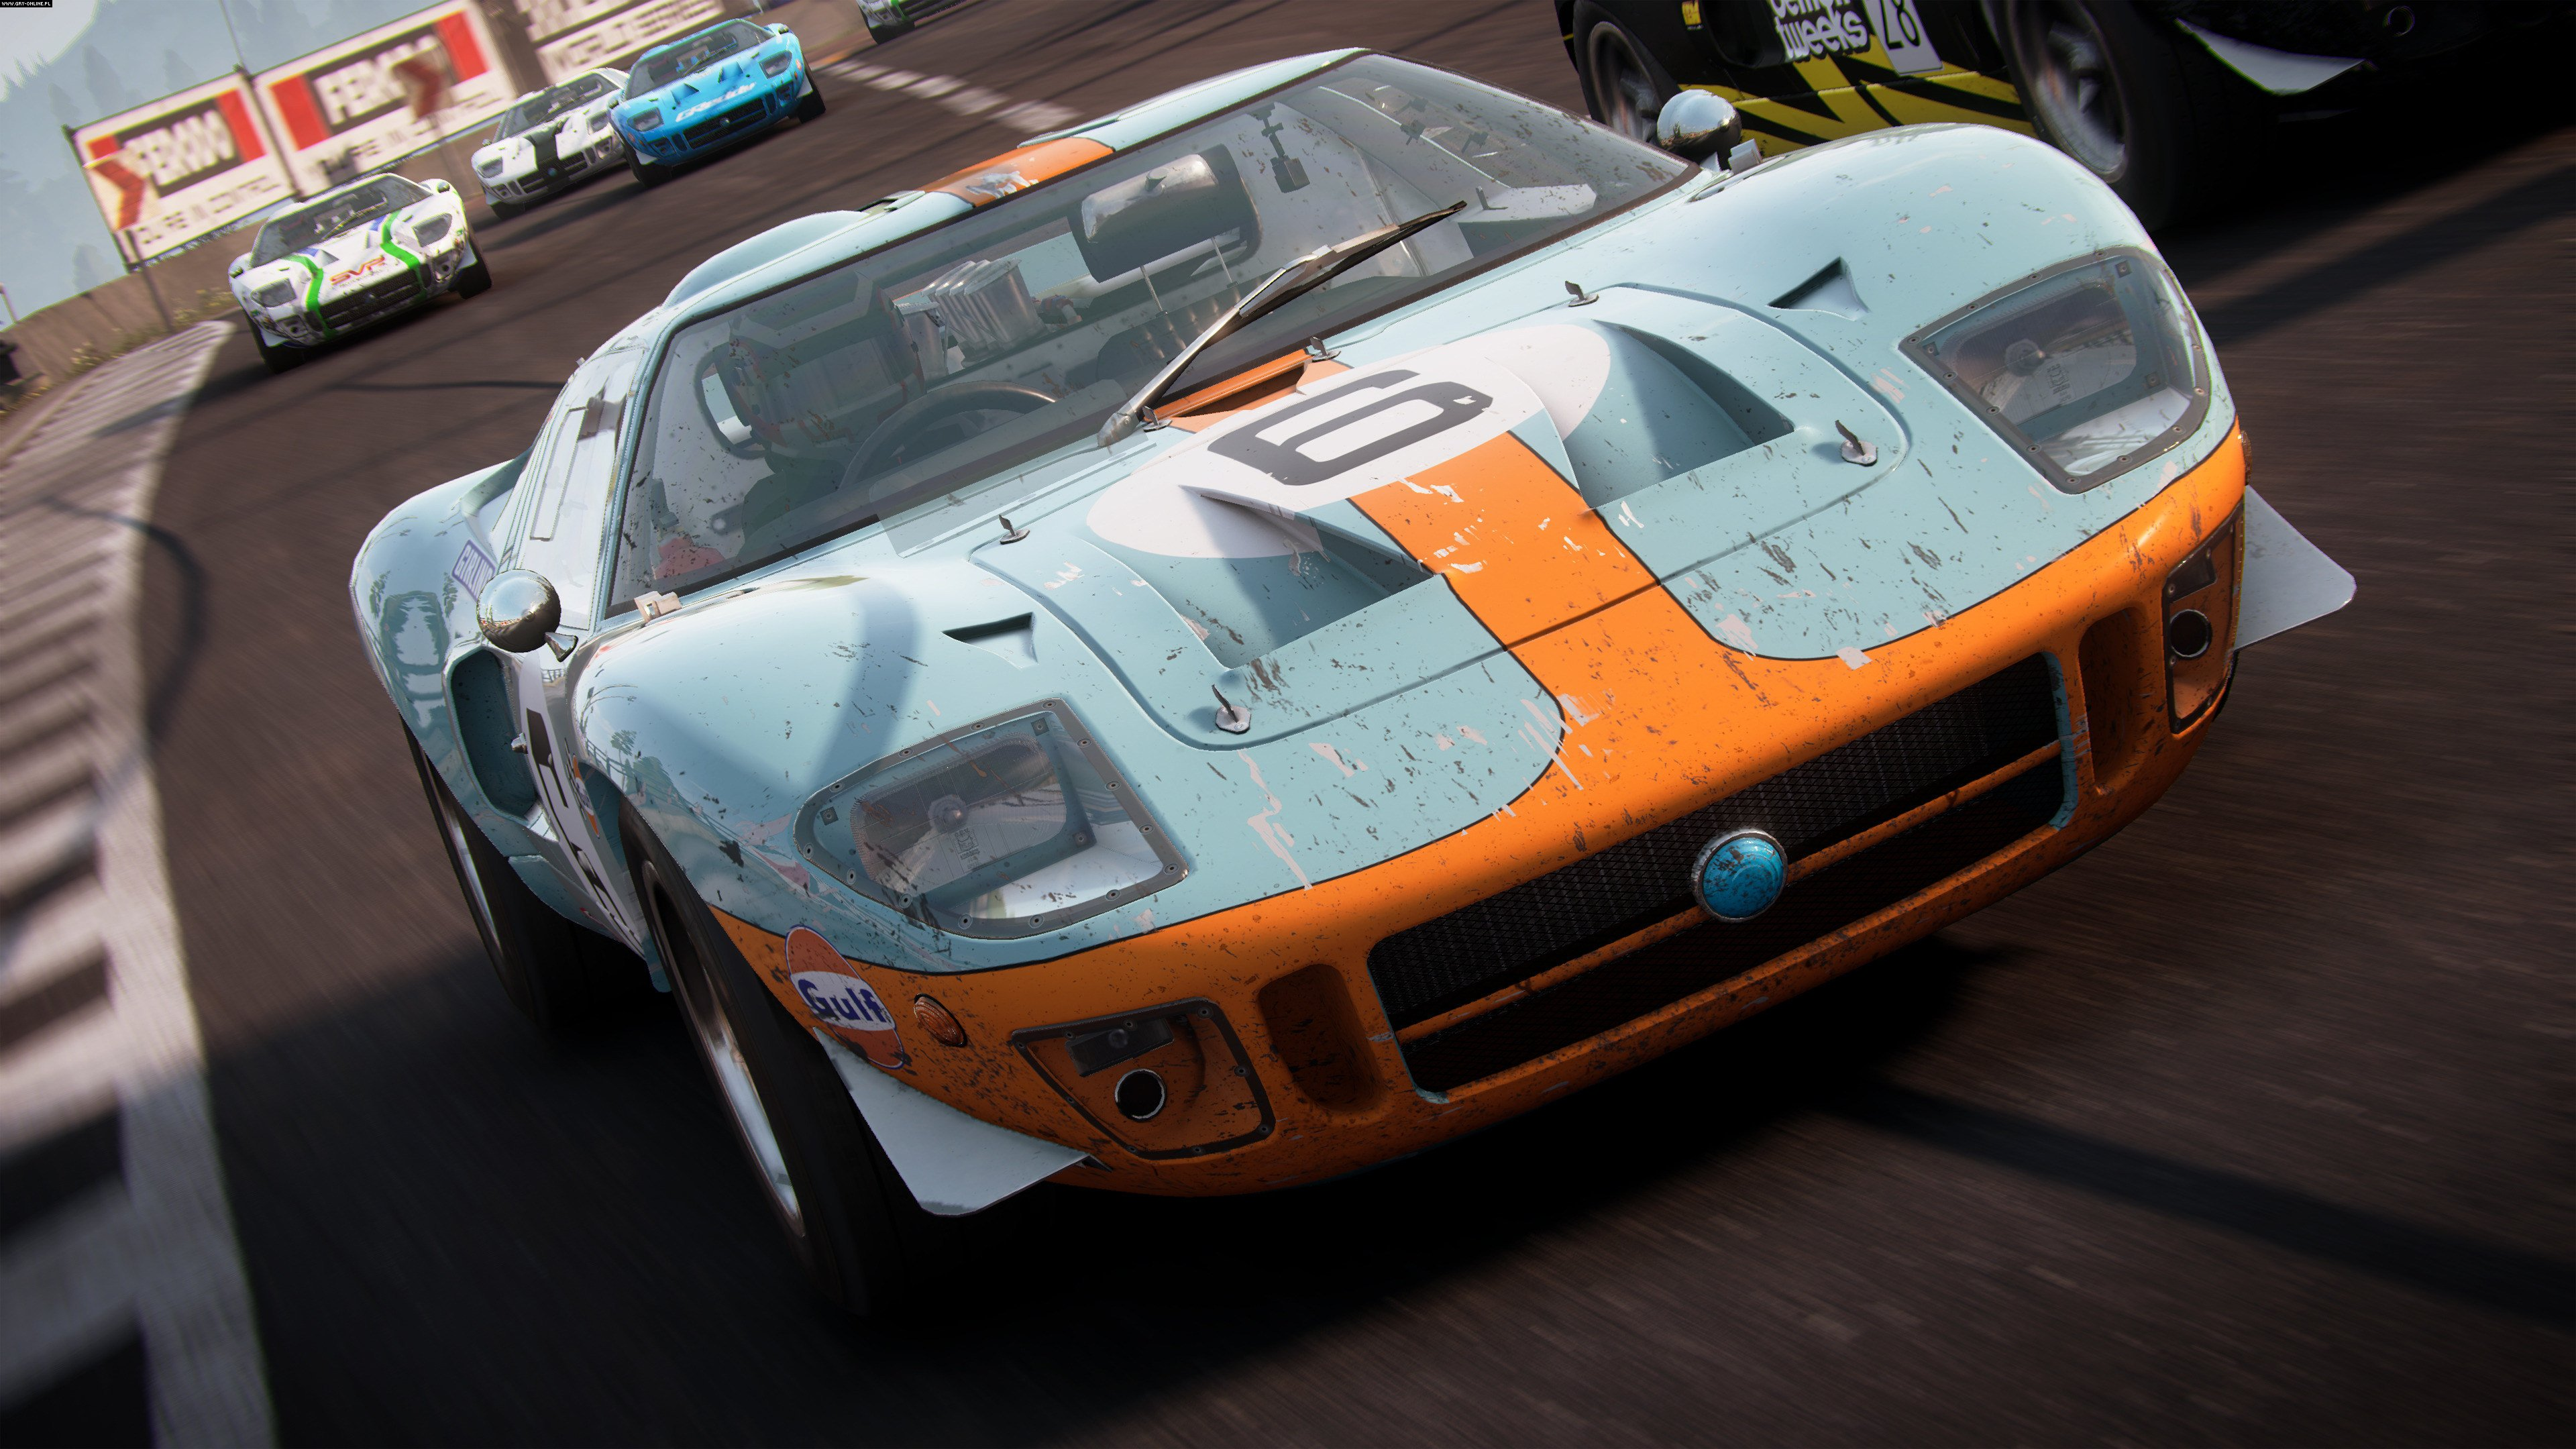 GRID PC, PS4, XONE Games Image 48/85, Codemasters Software